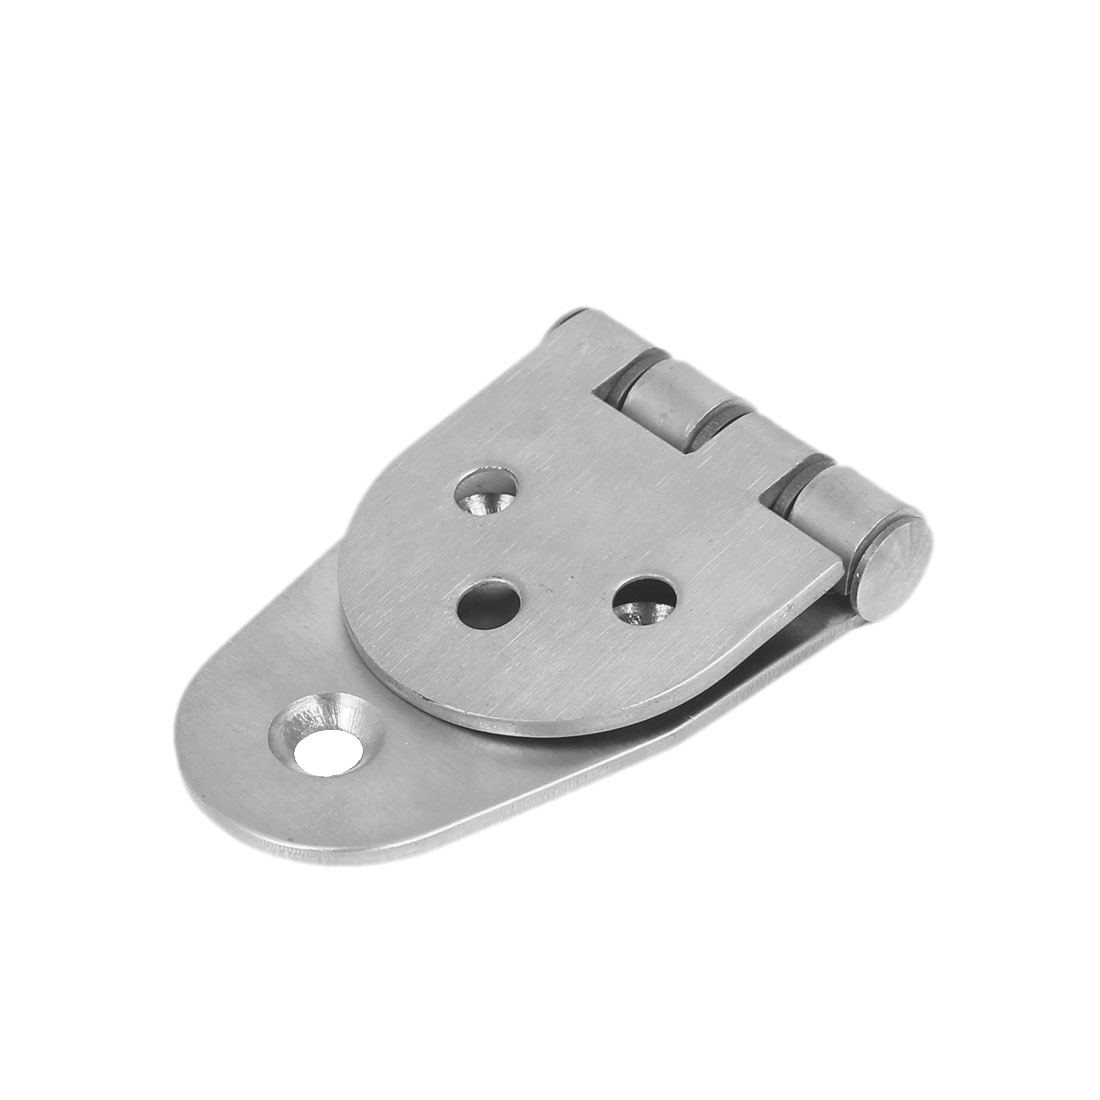 100mmx44mmx10mm Stainless Steel 270 Degree Door Bearing Hinge Silver Tone